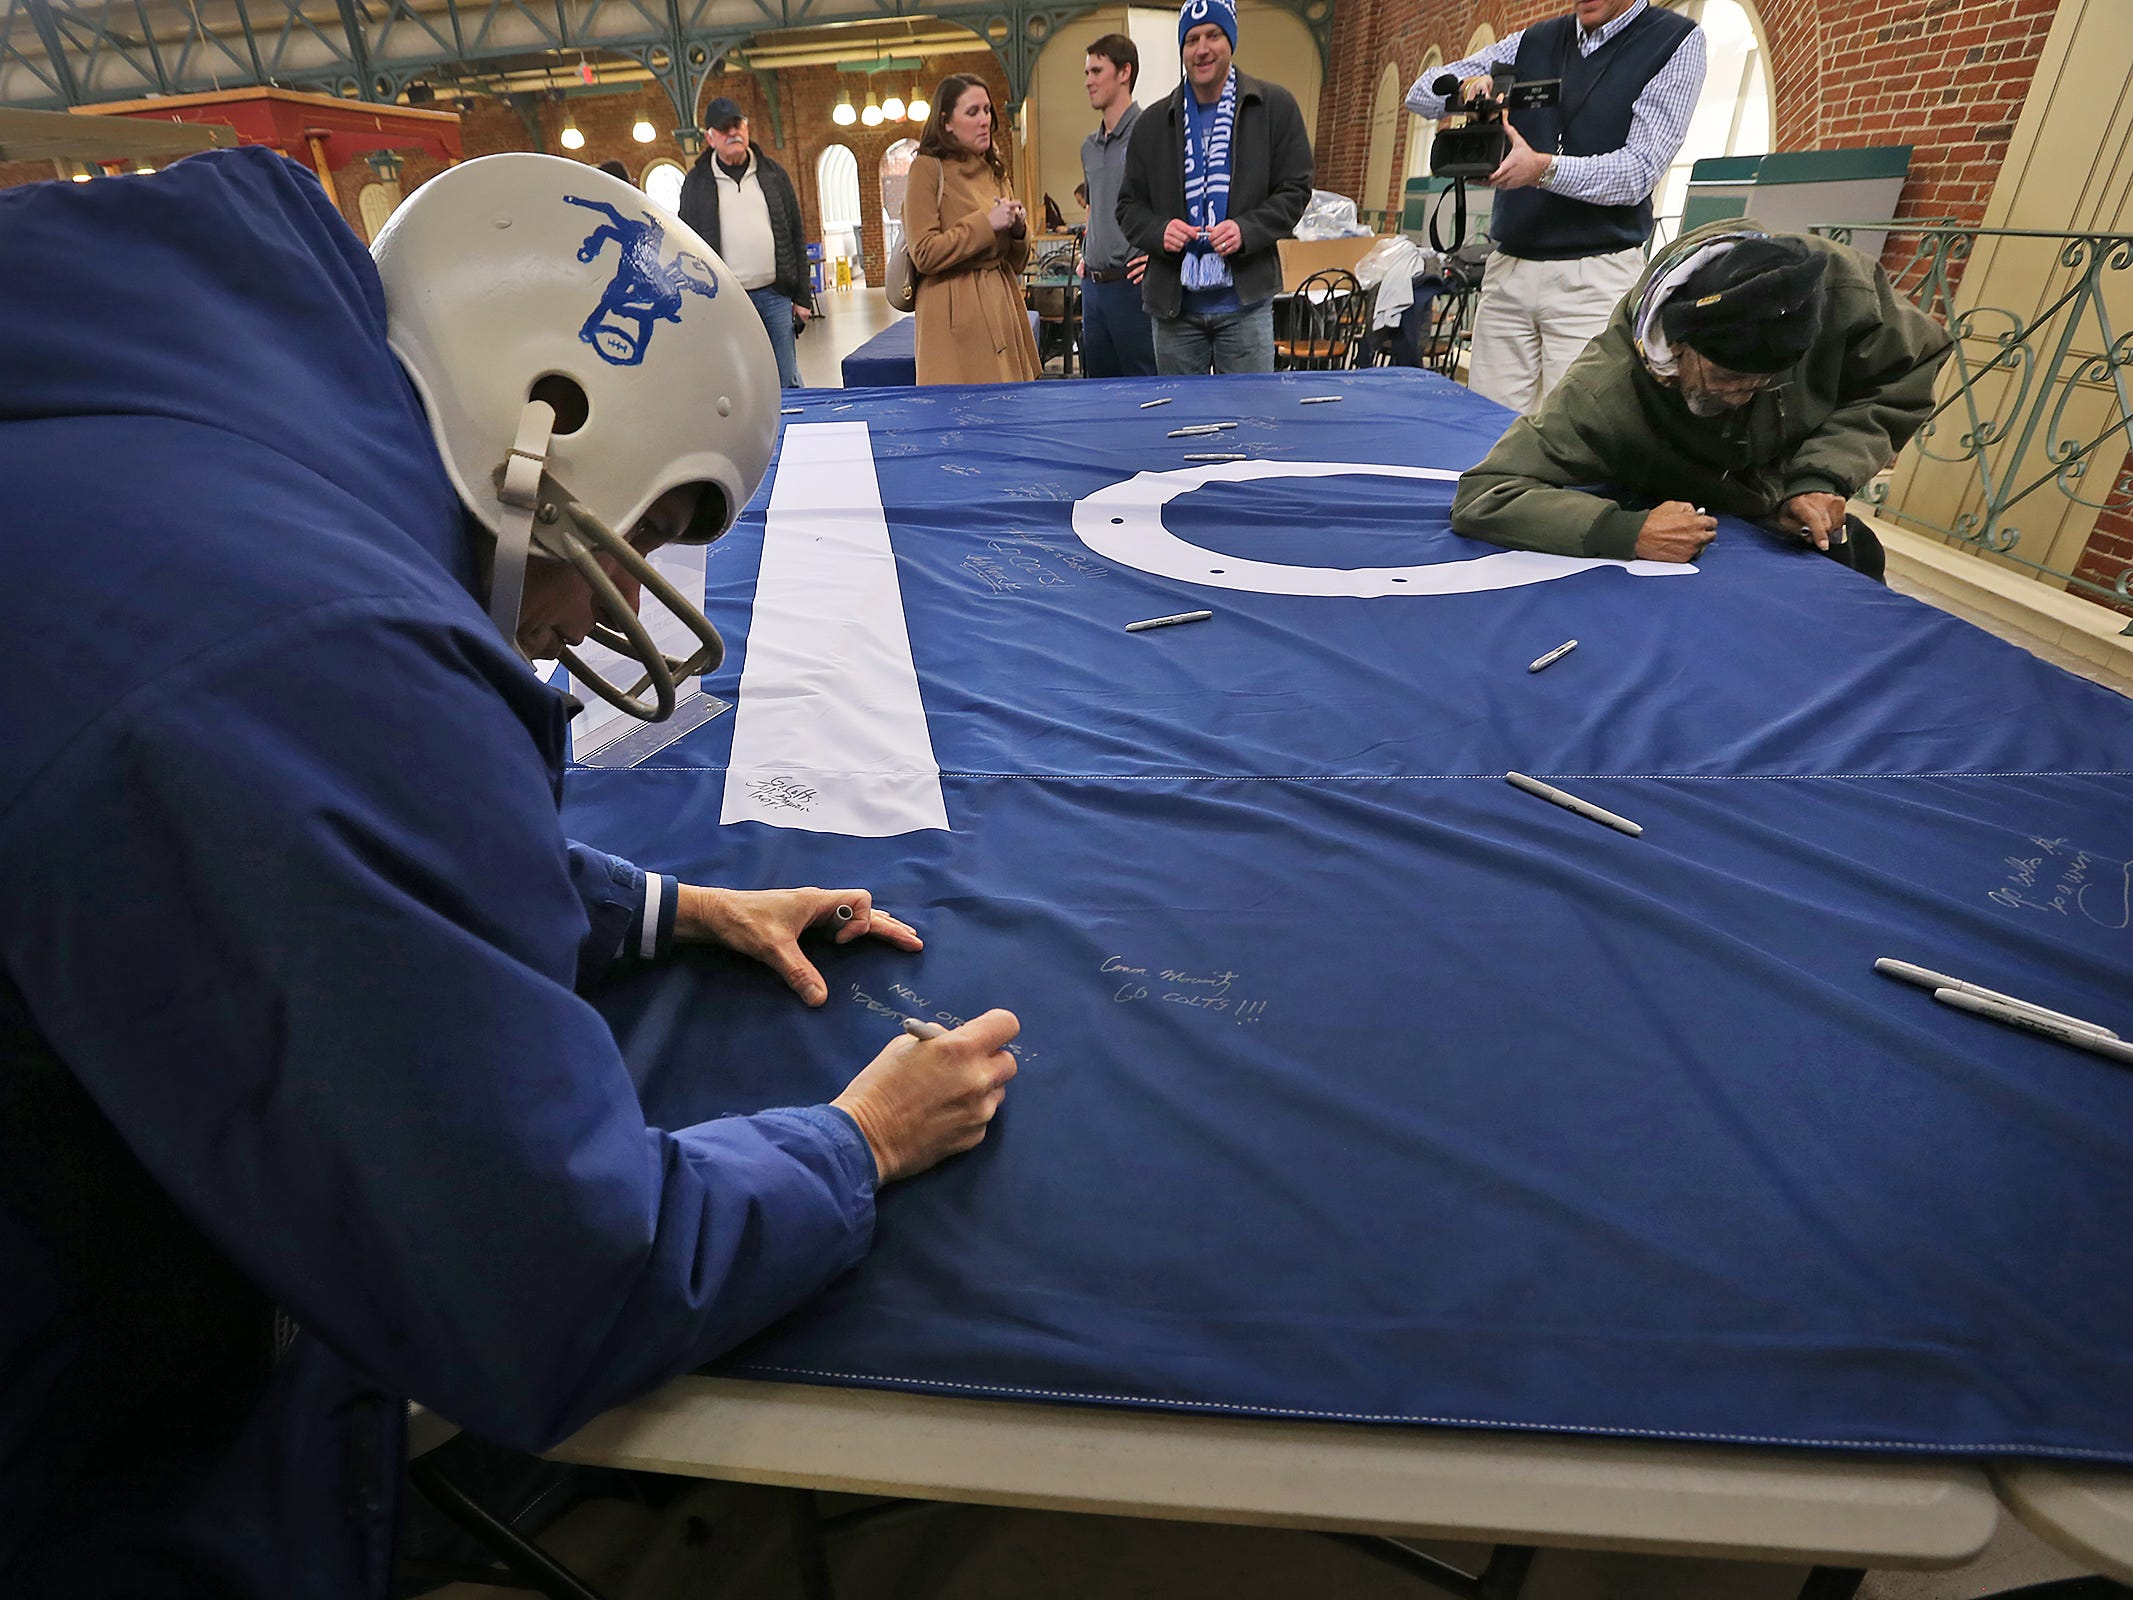 Colts fans Paul Diebold, left, and Thomas Bridgeforth sign a 1-0 banner for the Colts at City Market, Thursday, Jan. 10, 2019.  The banner will be displayed for the team to see at the airport as they head off to their Kansas City playoff game.